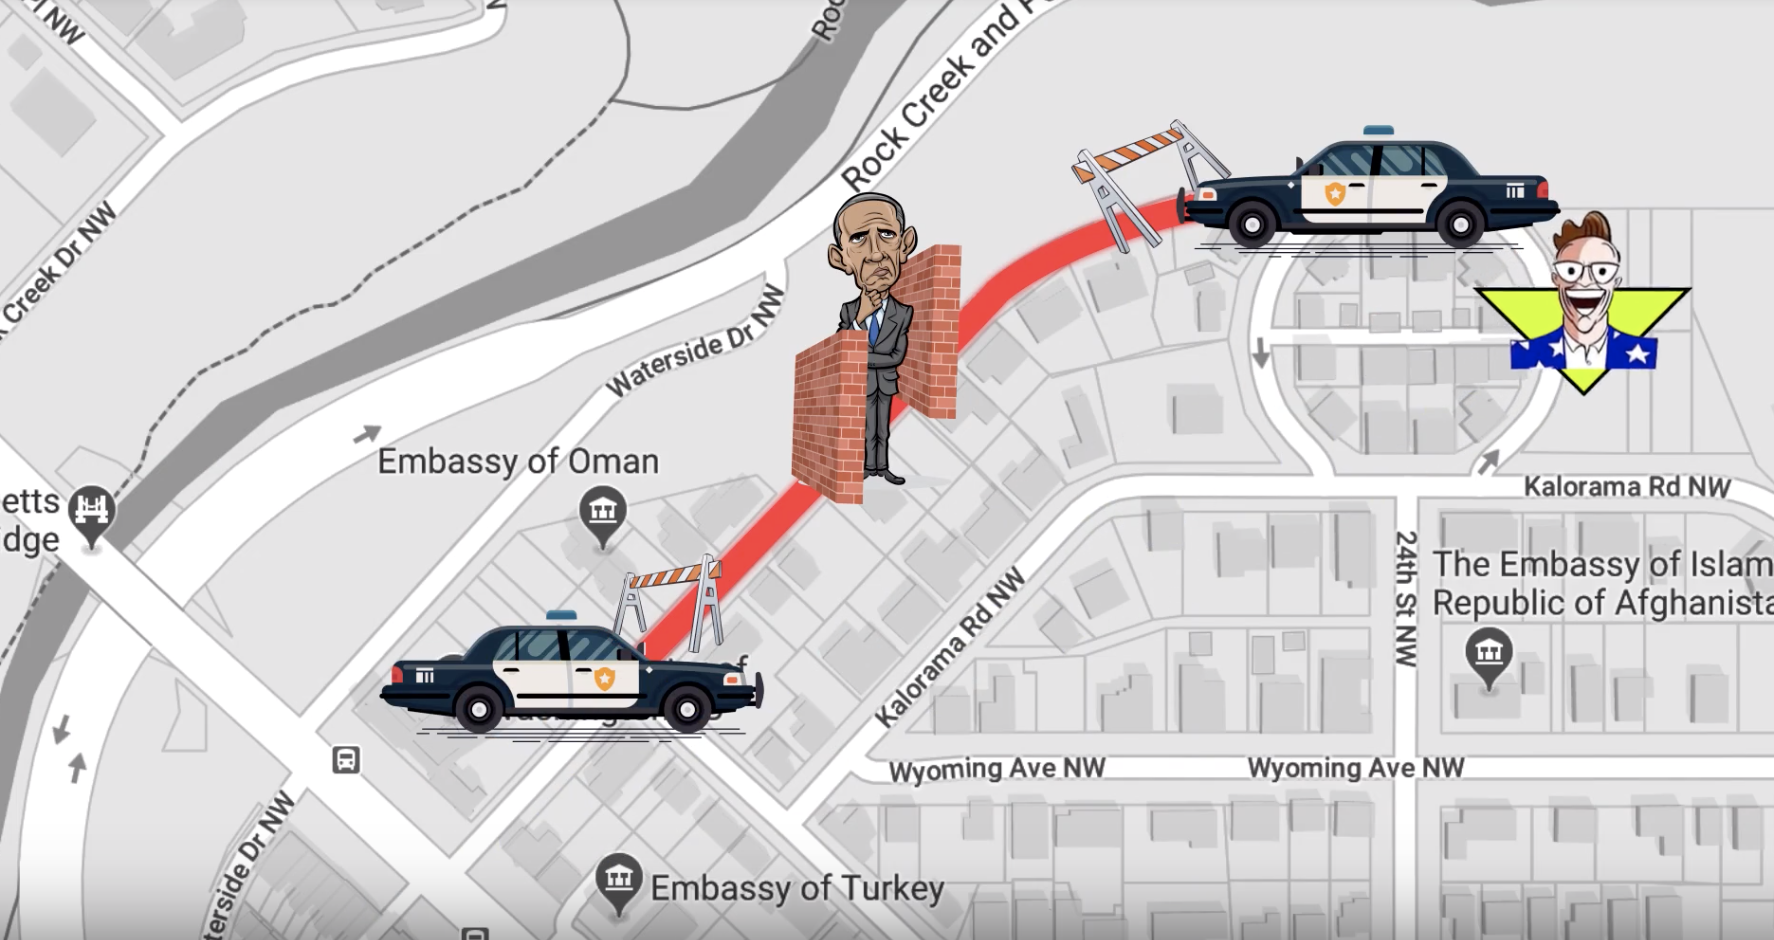 Is There A 10 Foot Wall Outside Obama S House We Went There To Find